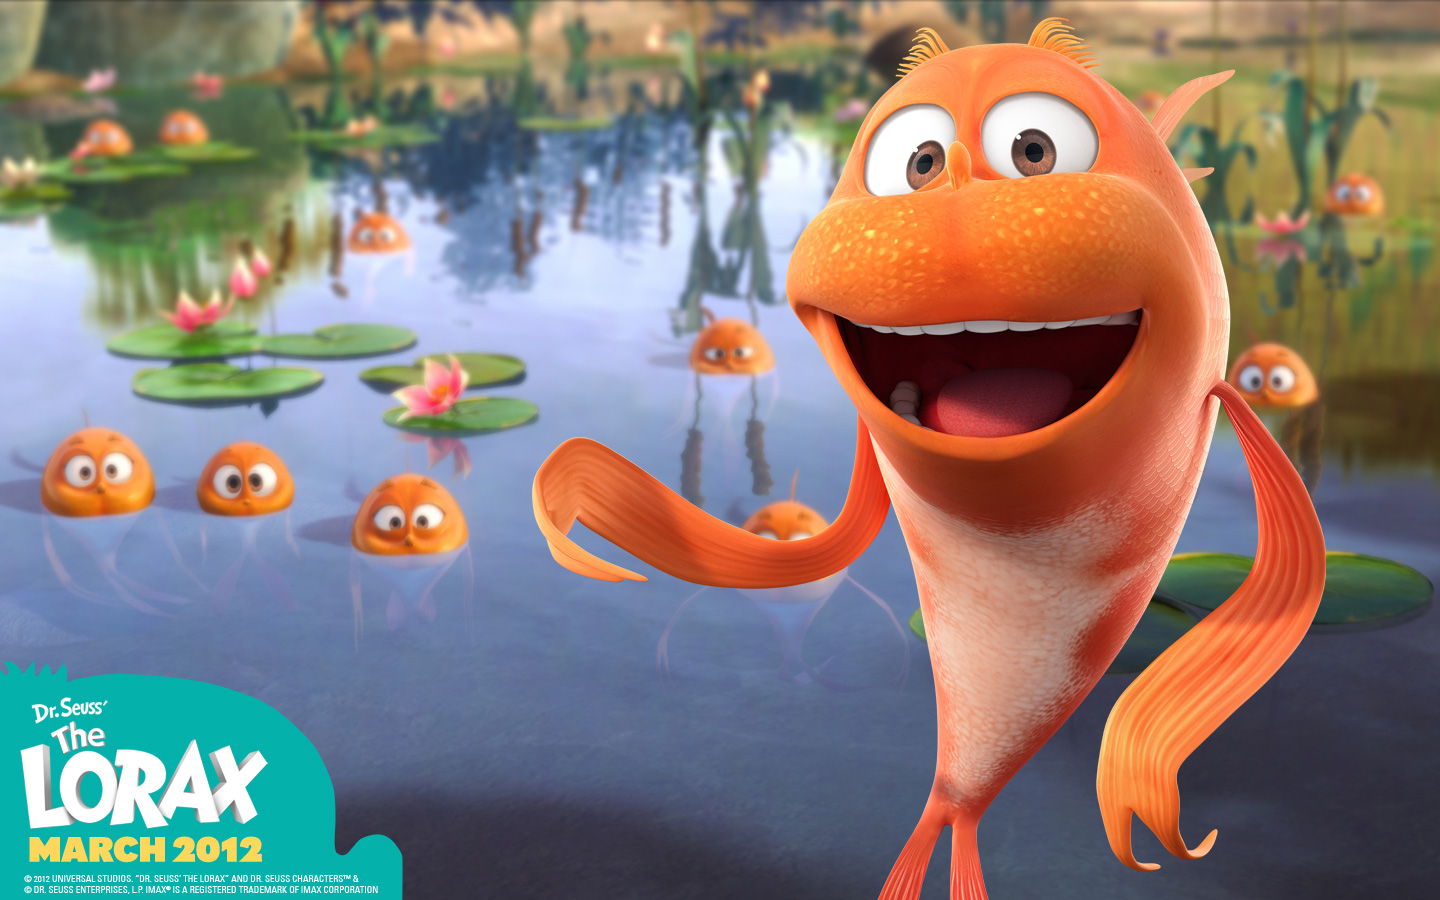 http://3.bp.blogspot.com/-omYUBuH54q0/T6HCgiAMUvI/AAAAAAAAB1U/8IKkimHX2mM/s1600/Dr.+Seuss+The+Lorax+fish+by+maceme+wallpaper.jpg